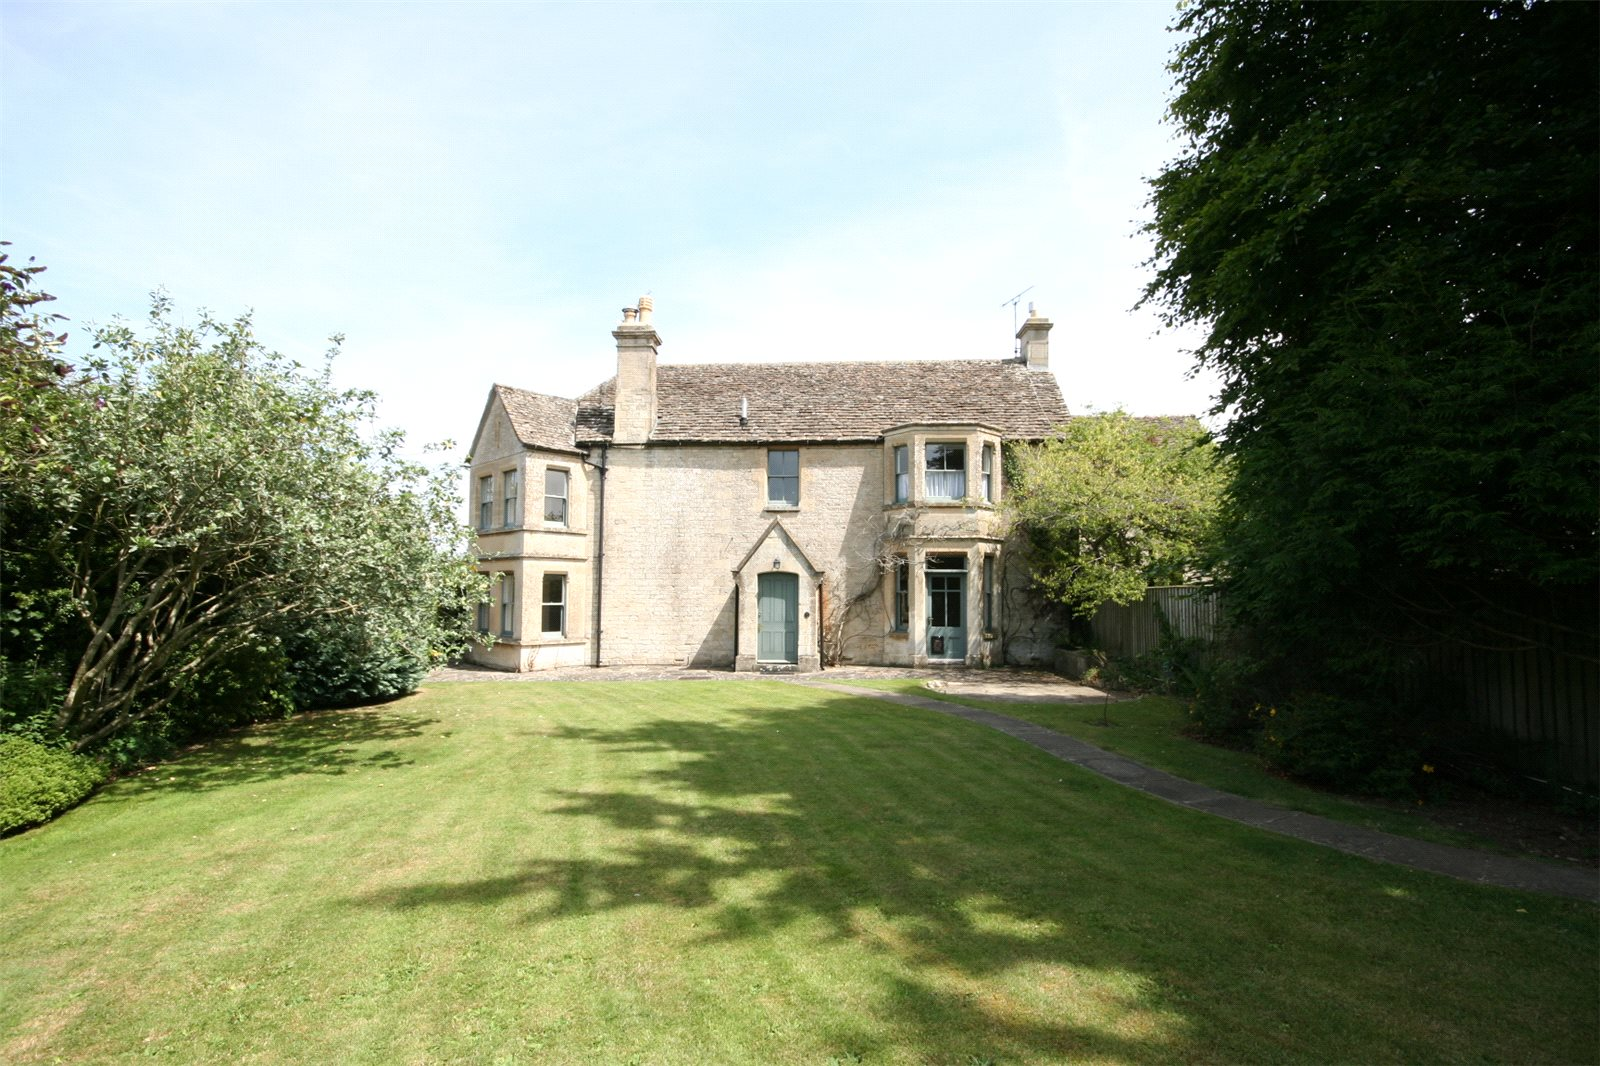 Single Family Home for Sale at Kemble, Cirencester, Gloucestershire, GL7 Cirencester, England